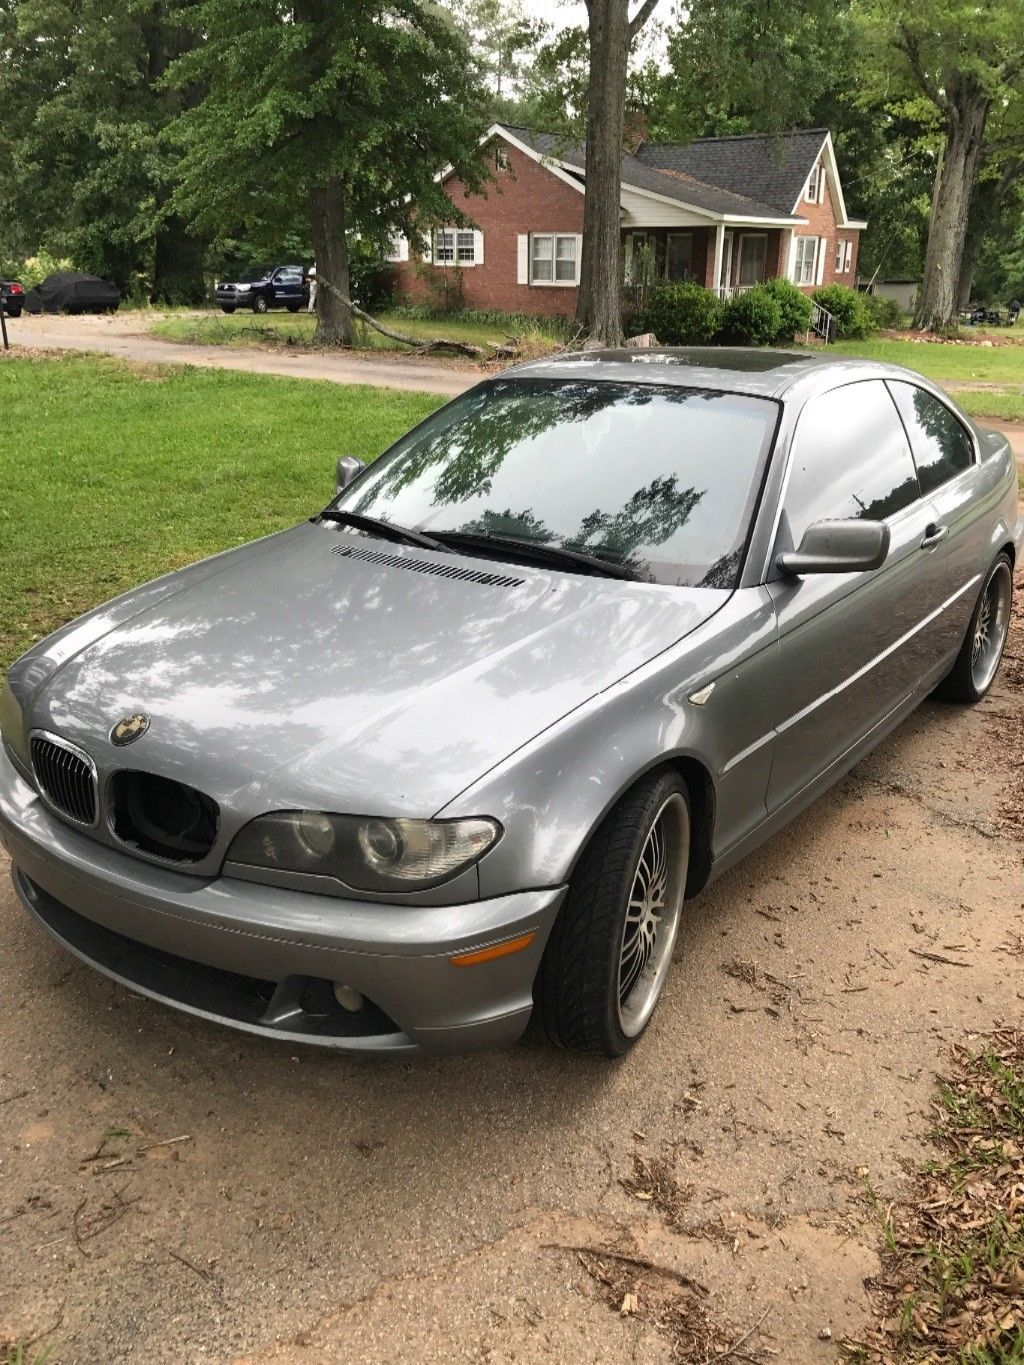 Cool Awesome BMW Series Black Leather BMW I - 2005 bmw 325i convertible